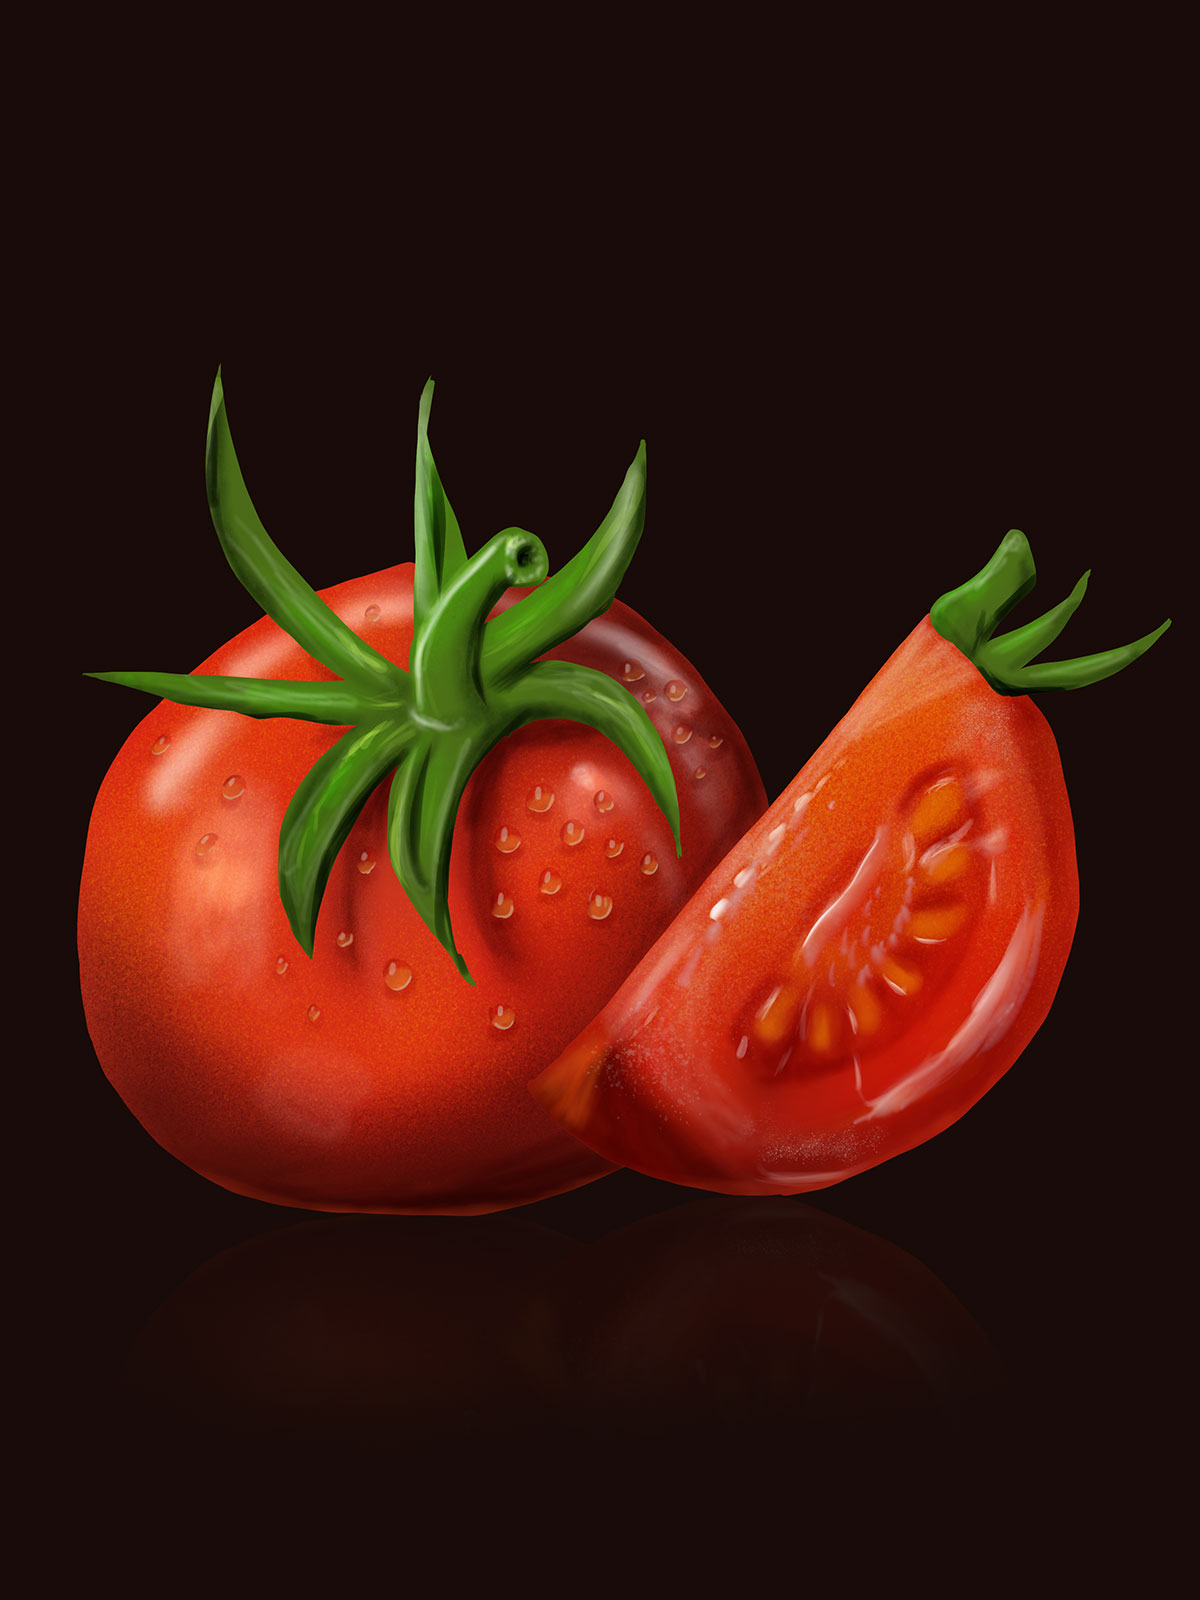 digital drawing of a full tomato and a sliced tomato